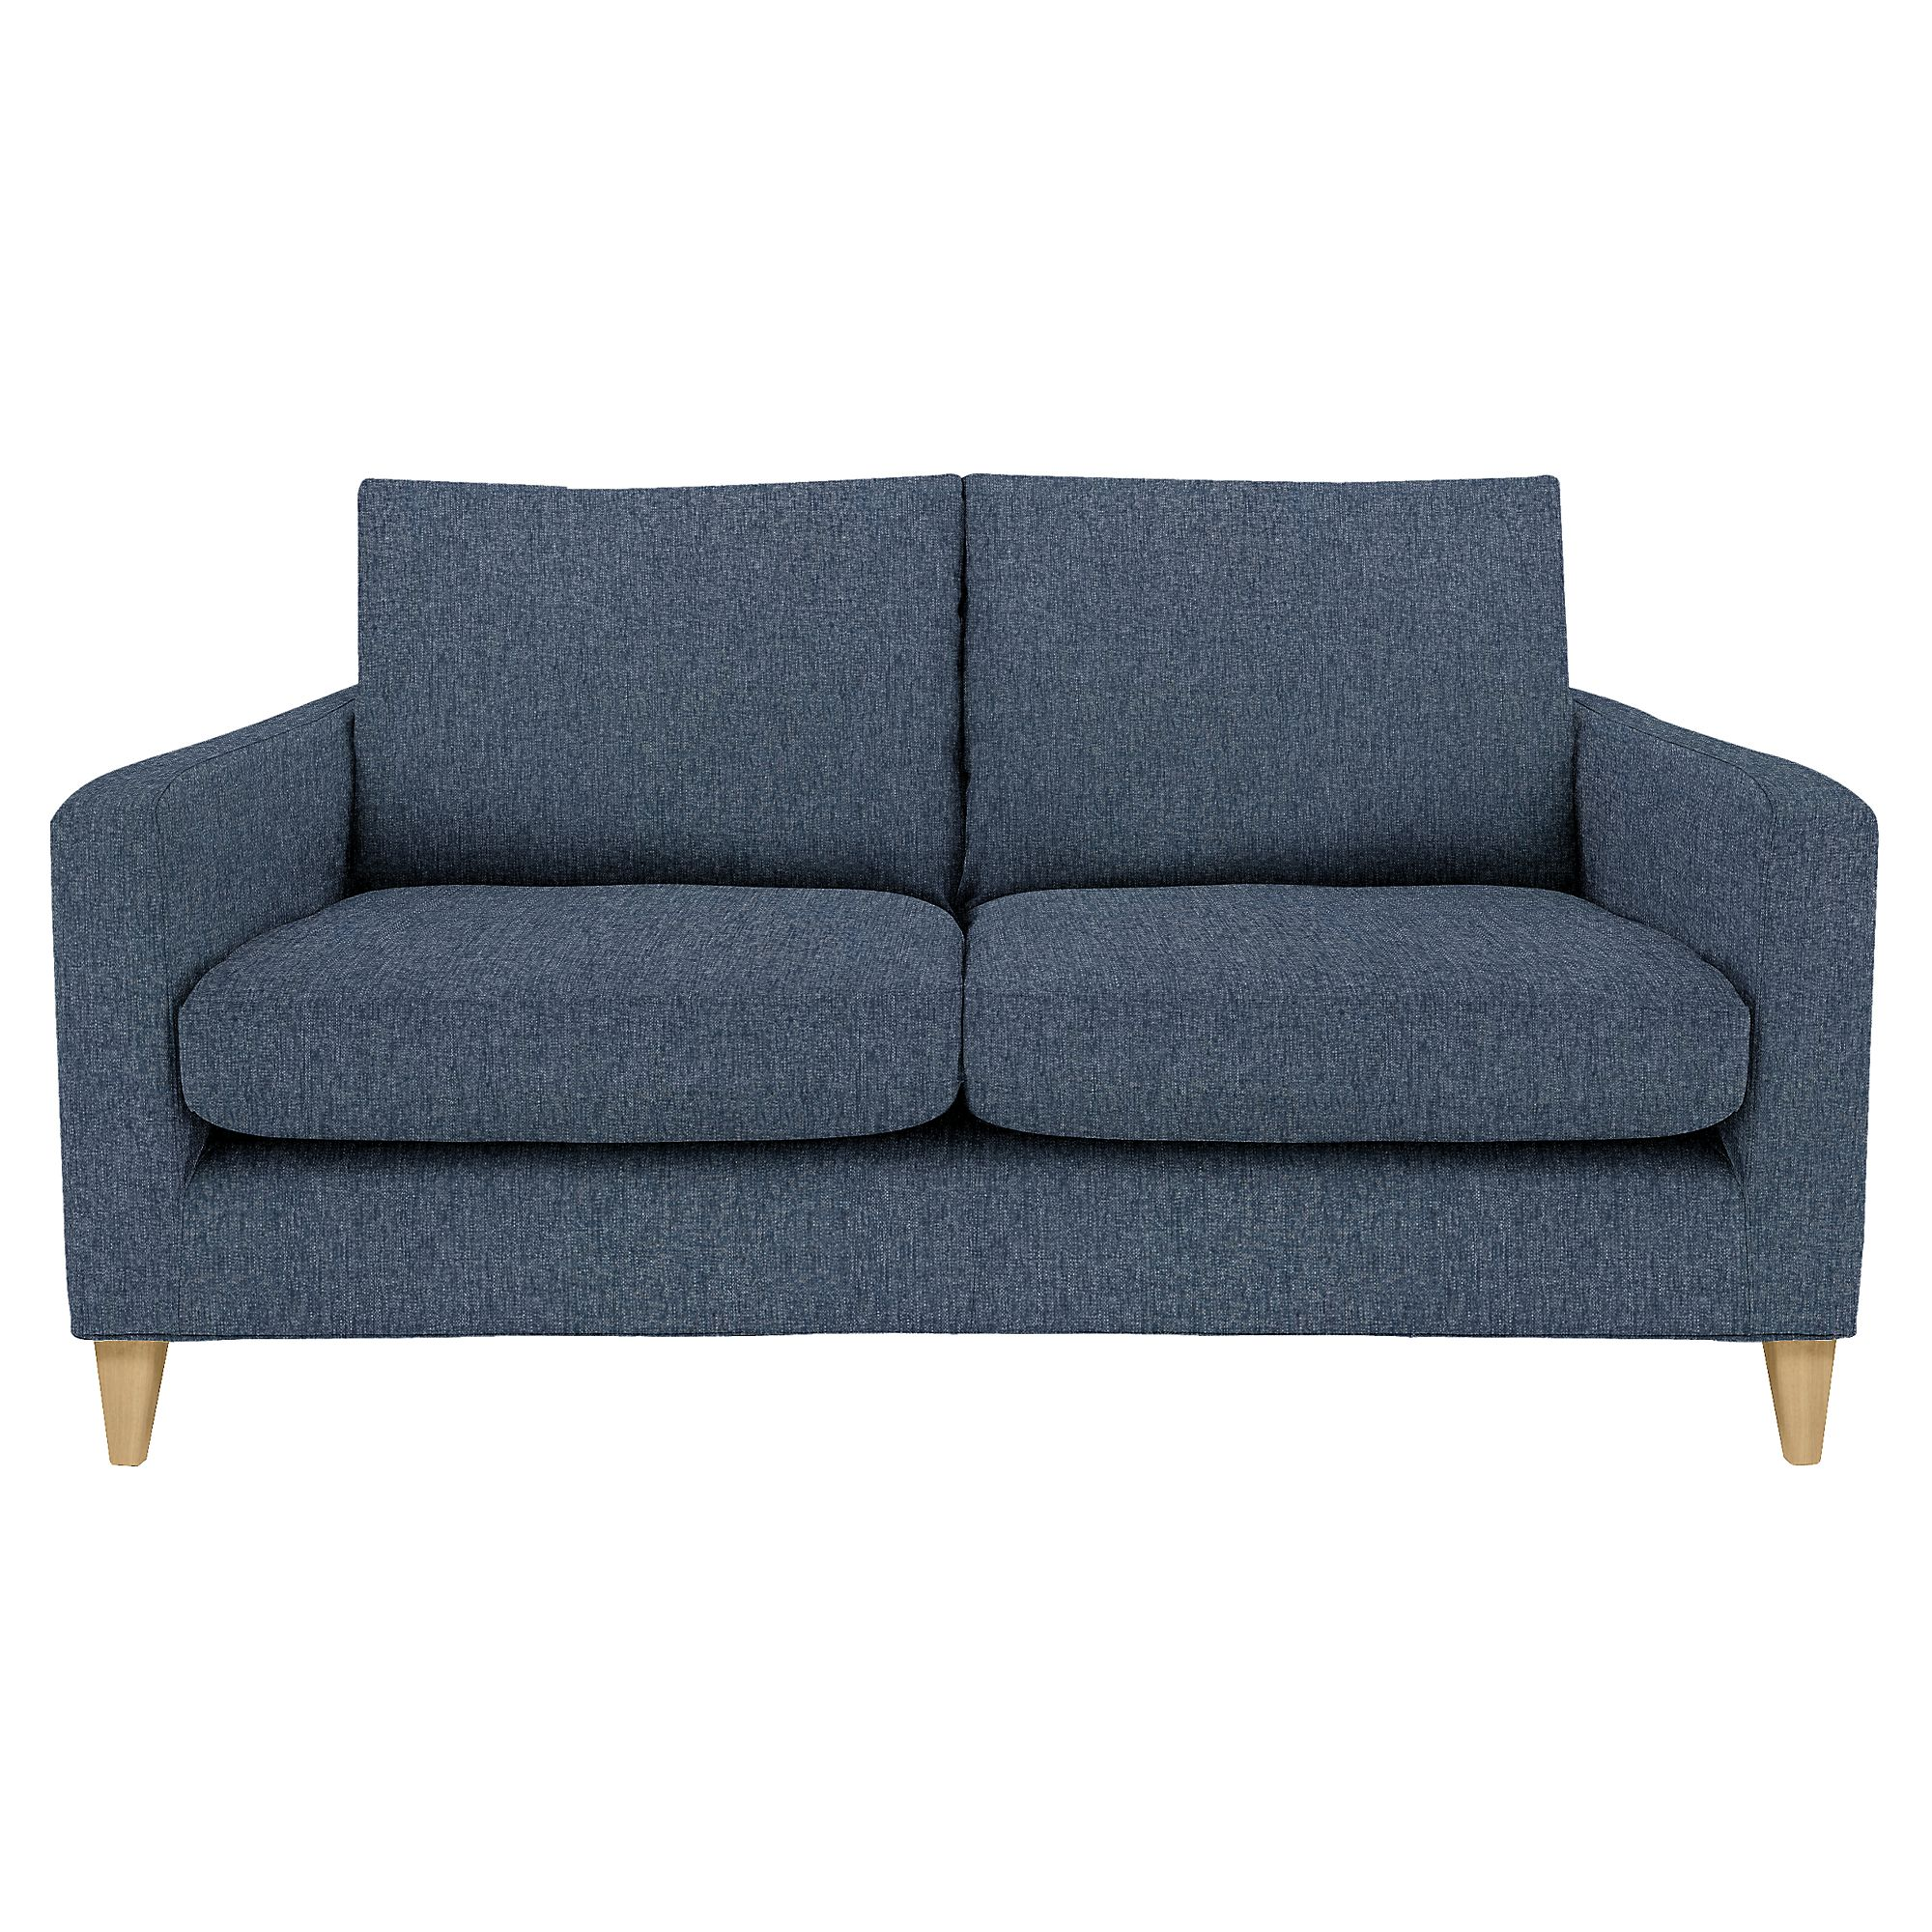 Sofa beds clearance hereo sofa for Sofa bed clearance